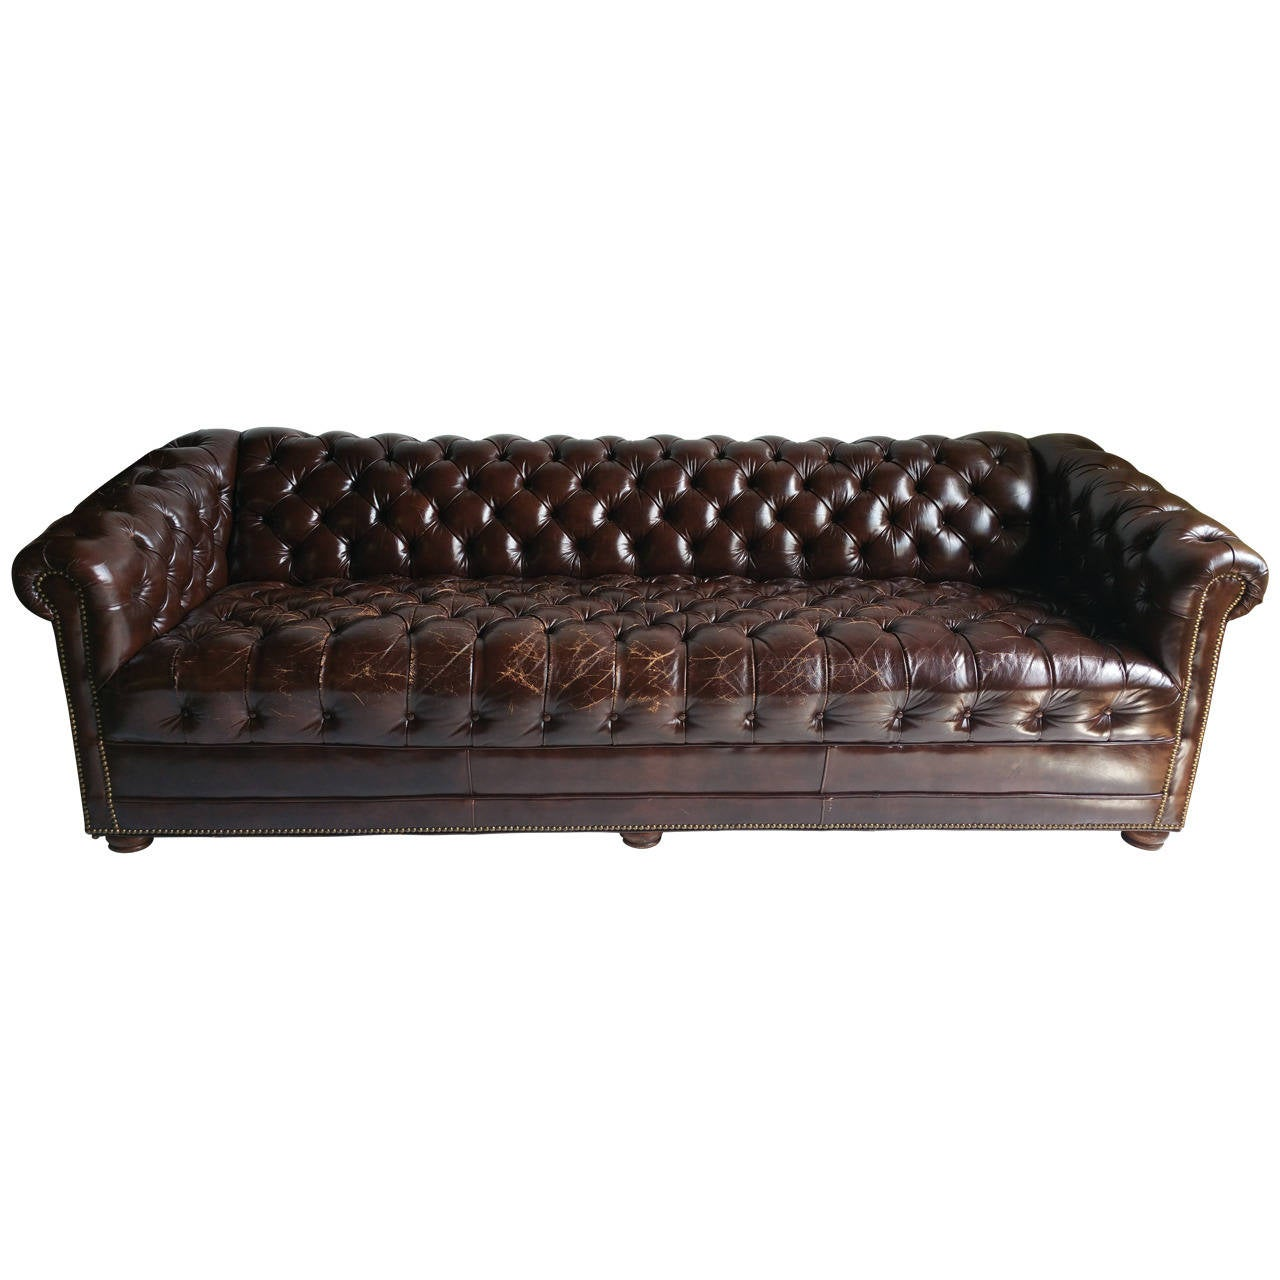 Brown Leather On Tufted Chesterfield Sofa Clic For